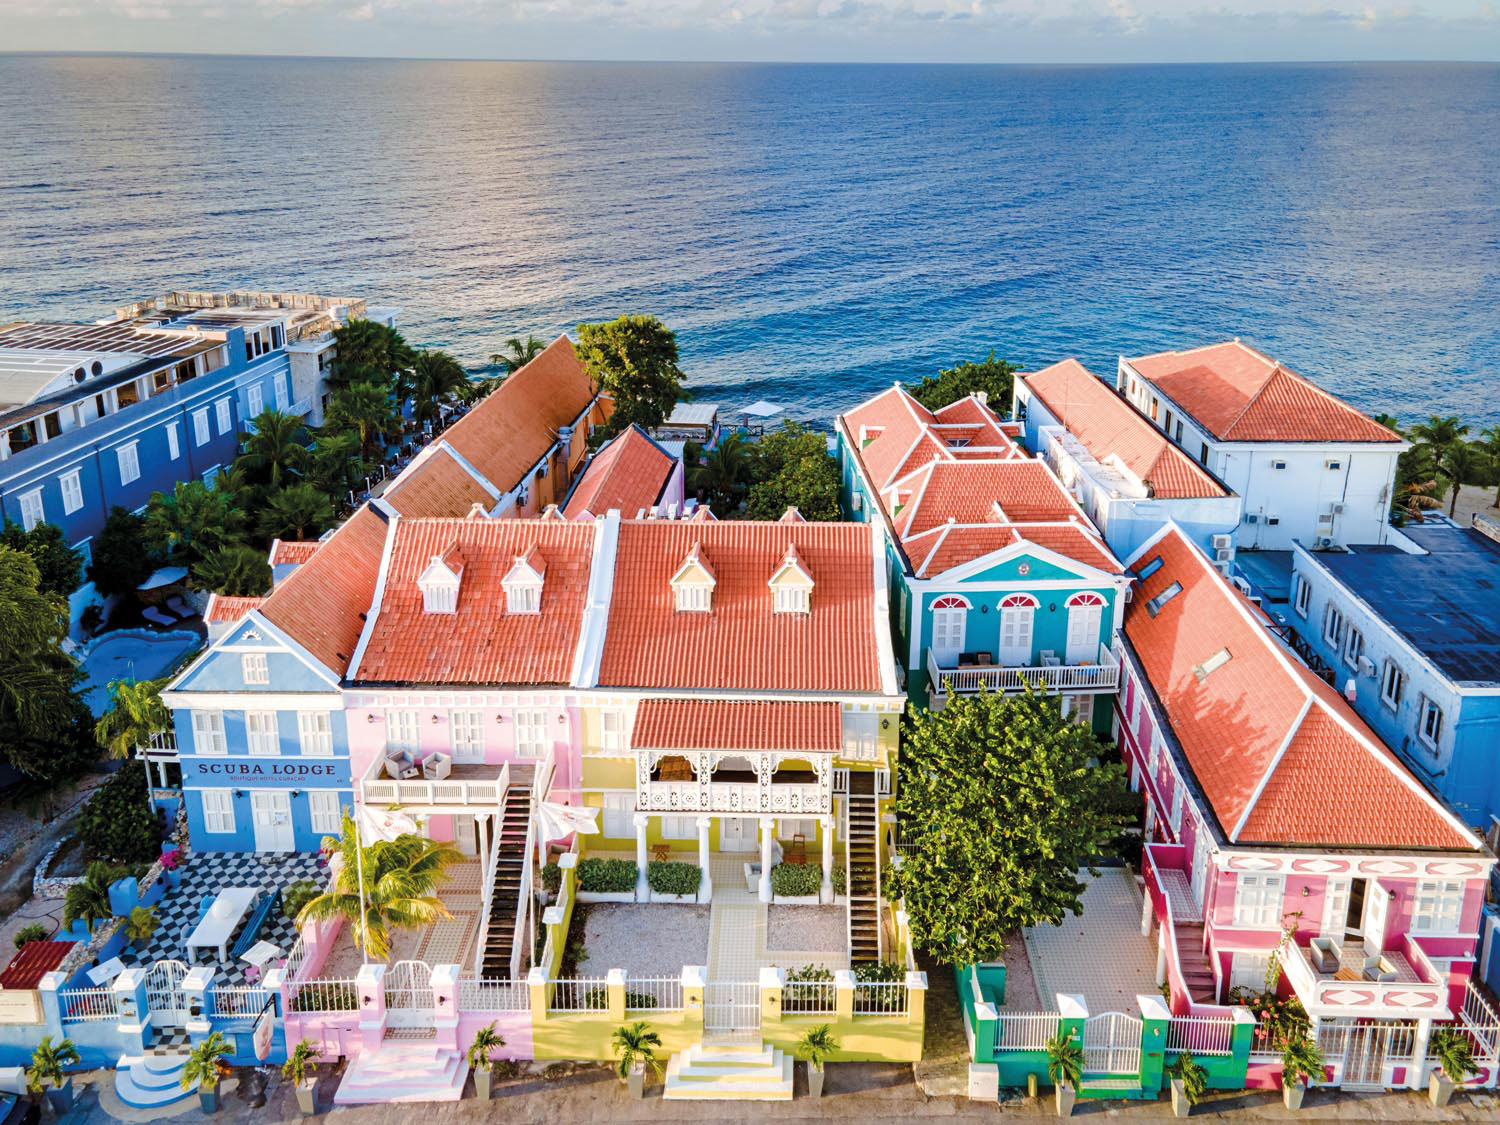 East of central Willemstad, the neighbourhood of Pietermaii is full of colourful historic houses converted into boutique hotels. Photo by Baarssen Fokke/Alamy Stock Photo